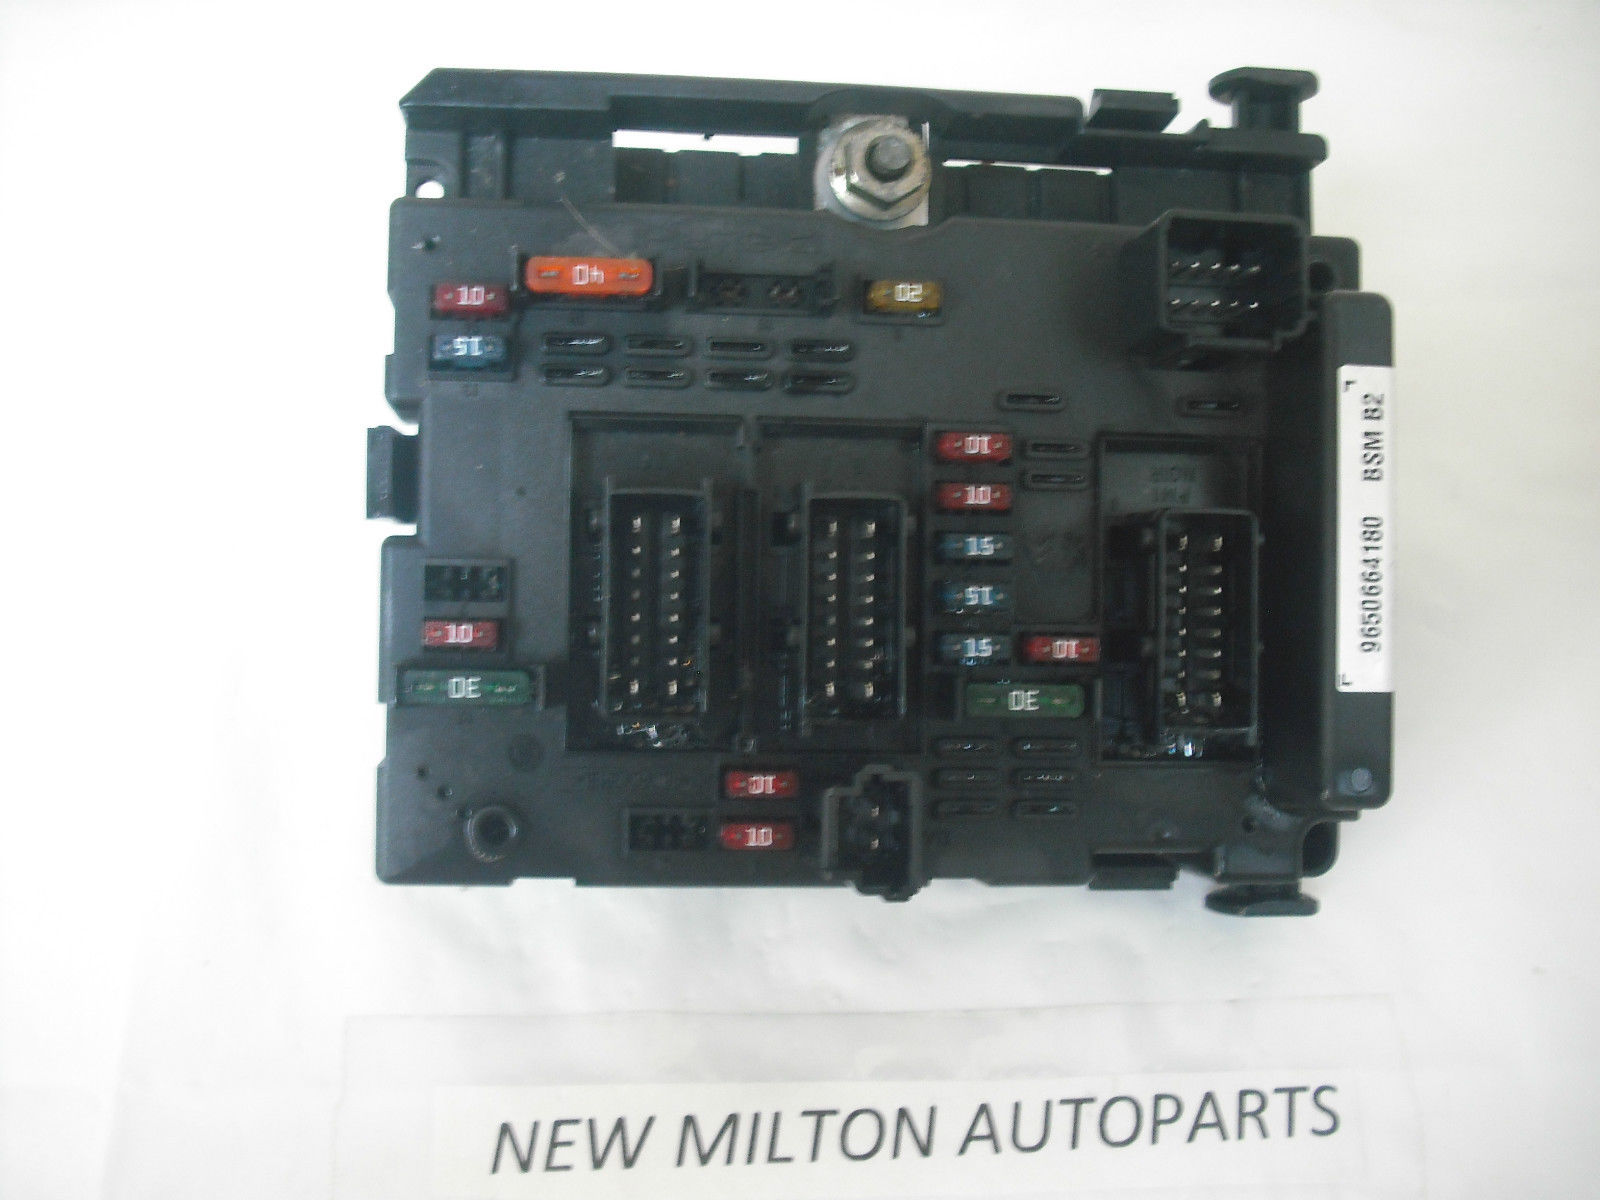 hight resolution of peugeot 307 fuse box location hatchback 39 wiring peugeot expert 2005 fuse box diagram peugeot e7